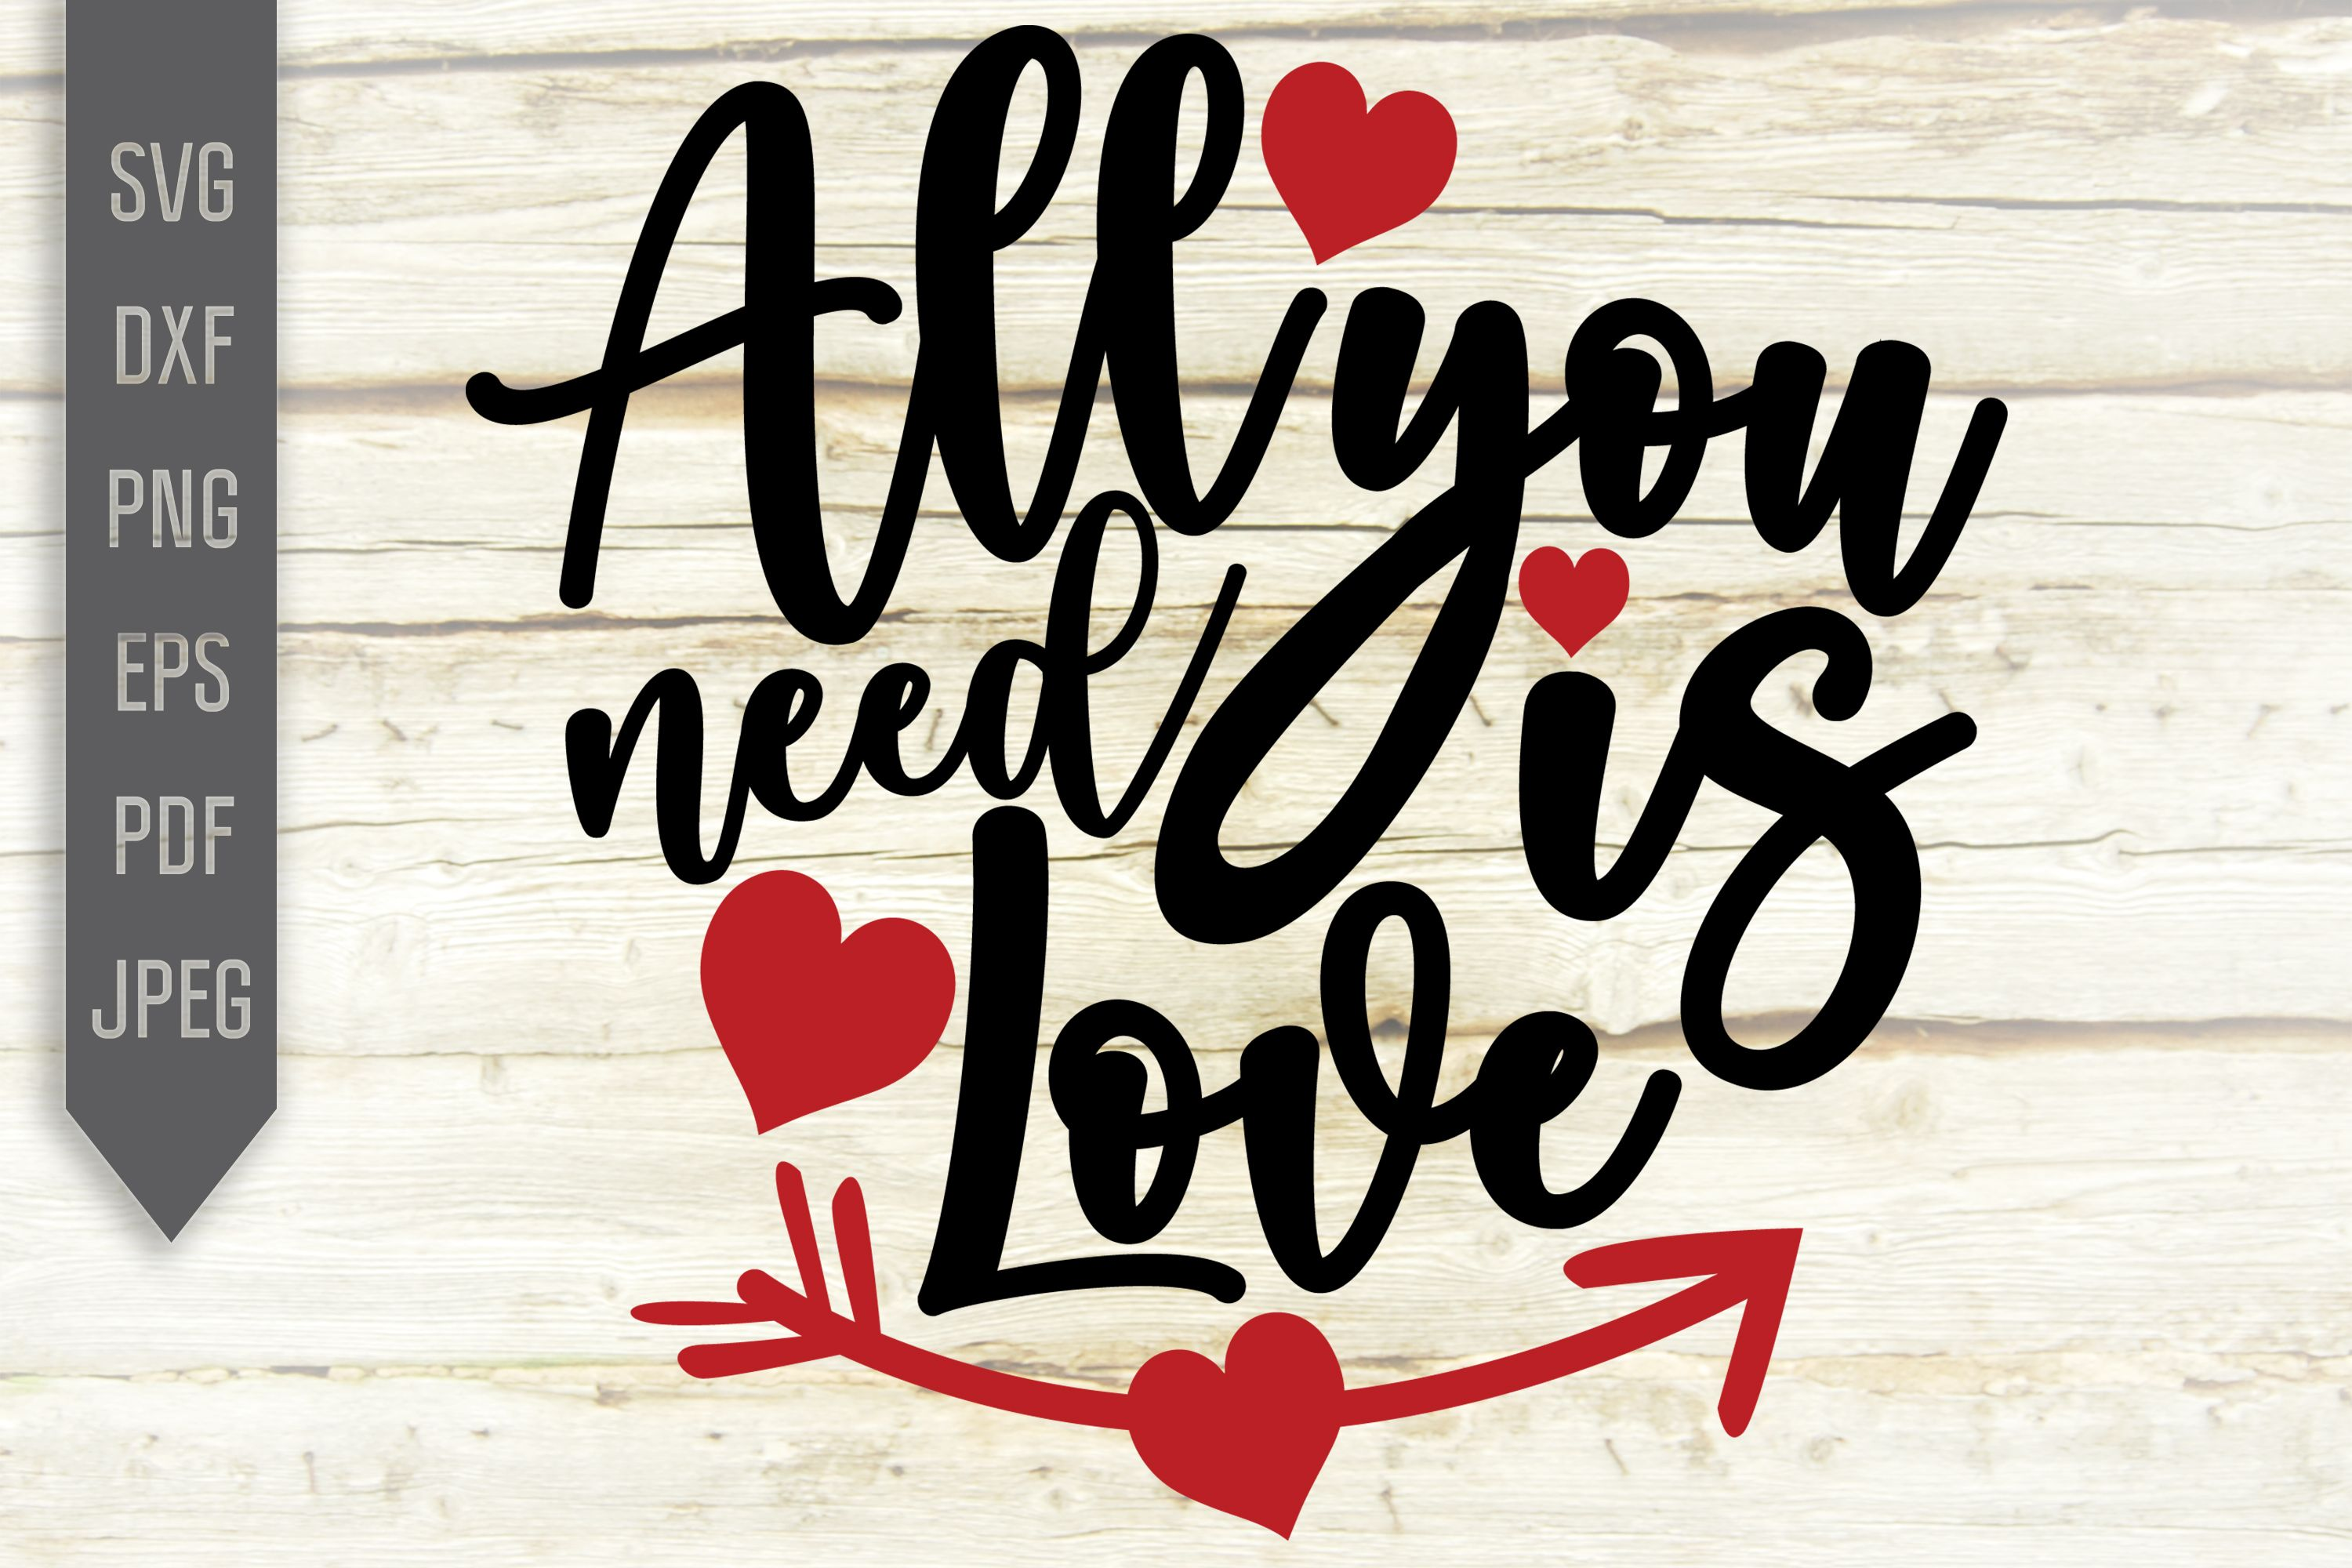 All You Need Is Love Svg Dxf Valentine S Day Svg Heart Svg Love Svg Hand Lettered Svg Valentines Svg Valentines Di 2020